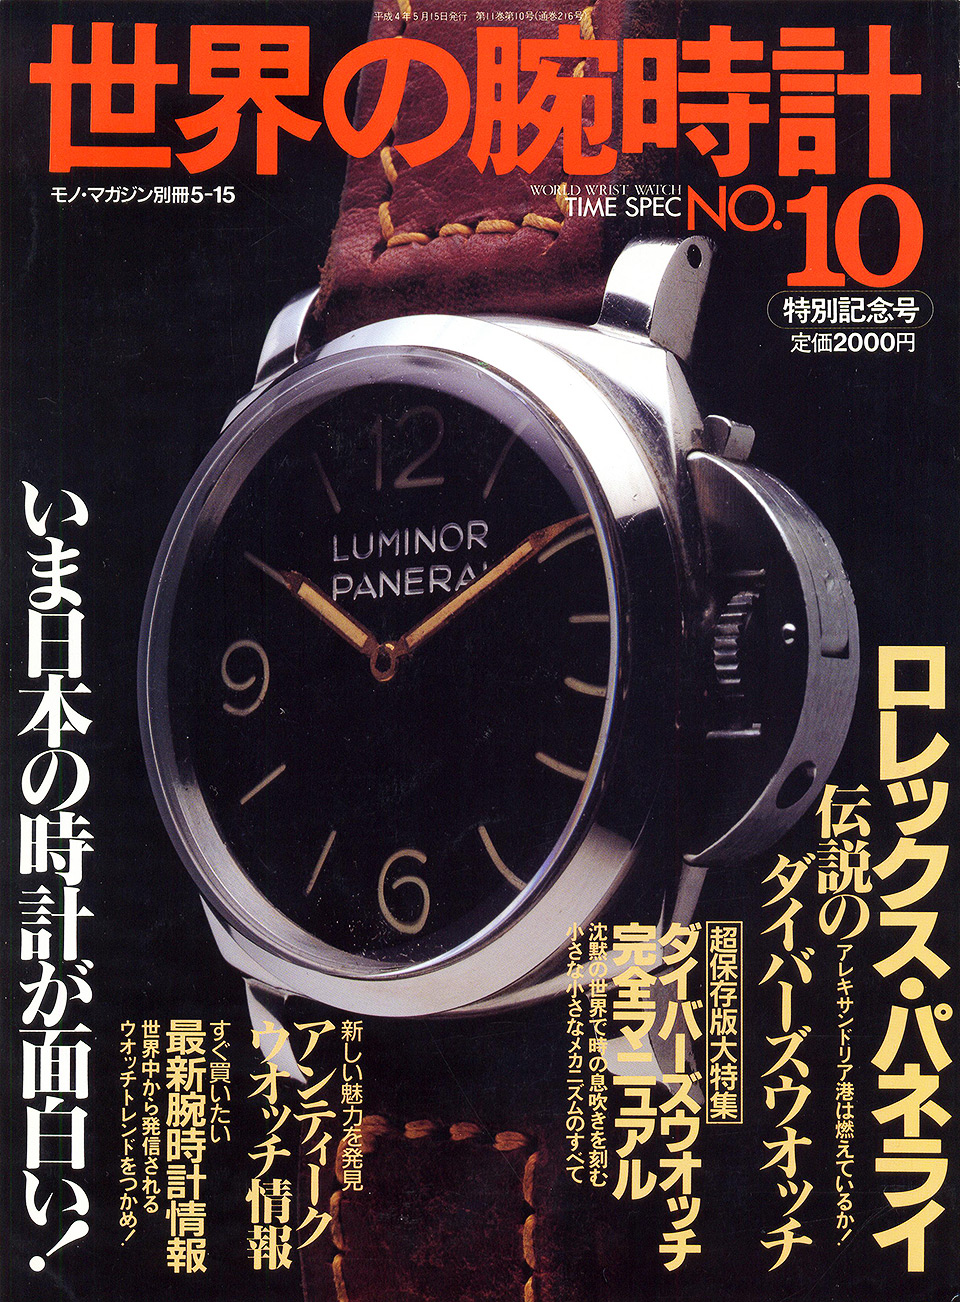 180213-panerai-japanese-article-1992